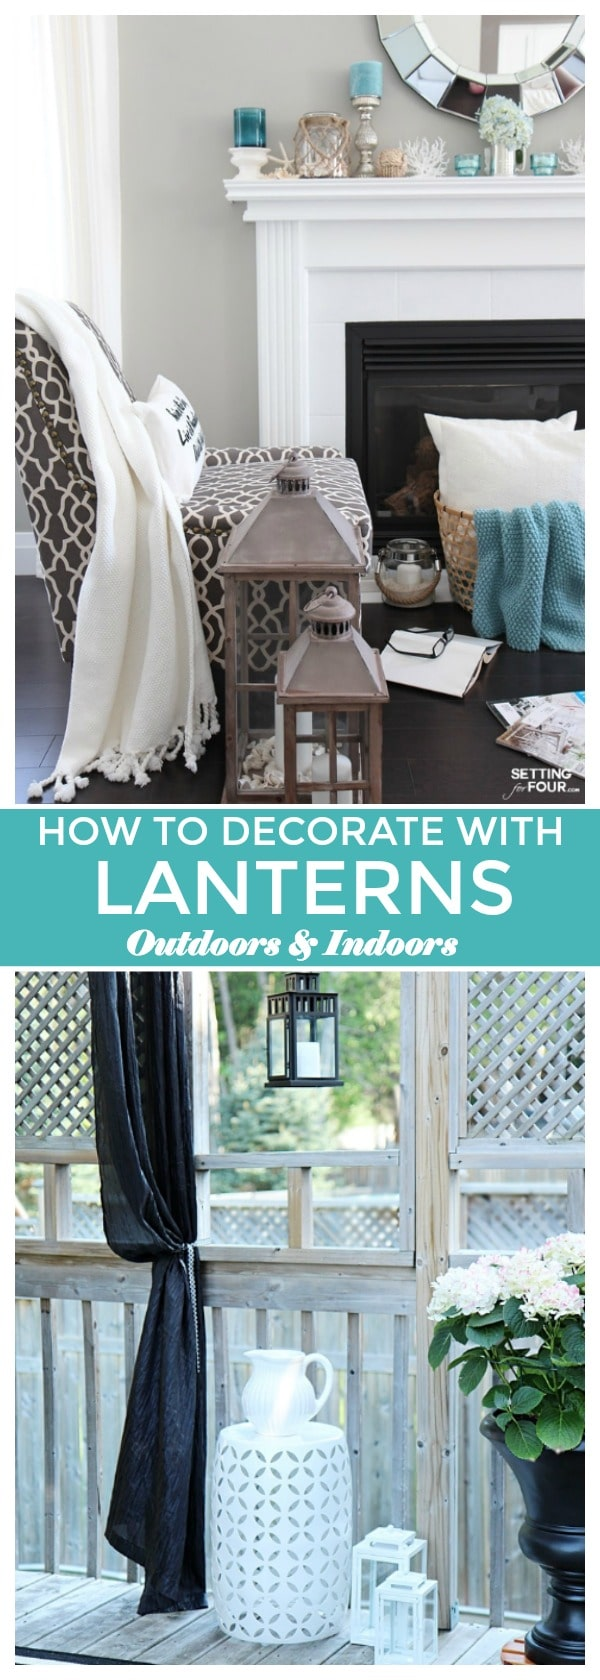 Decorating with Lanterns   Outdoor and Indoor Ideas   Setting for Four Decorating with lanterns   ideas for outdoors and indoors  See why I m so